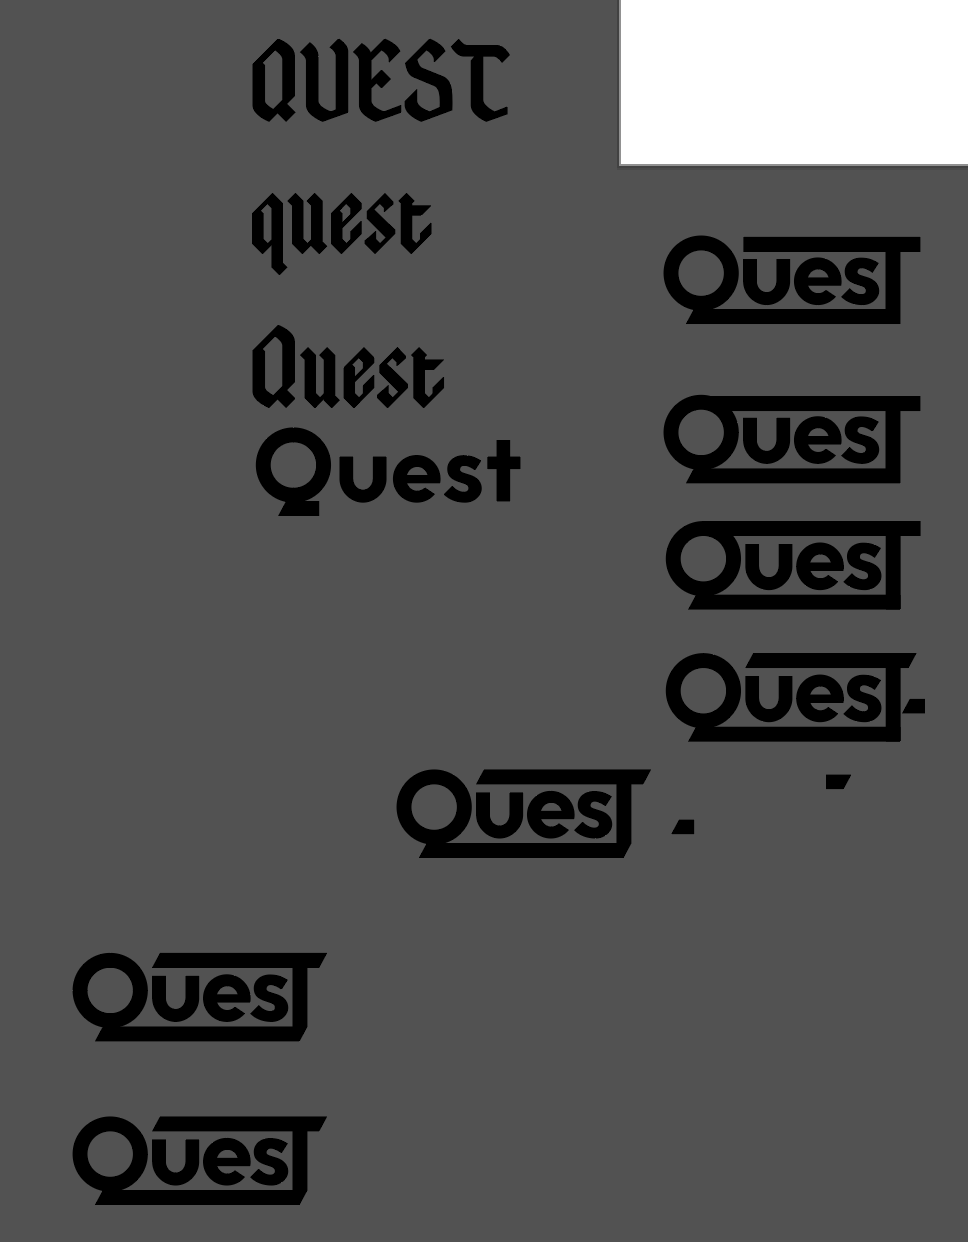 QUEST - image 1 - student project